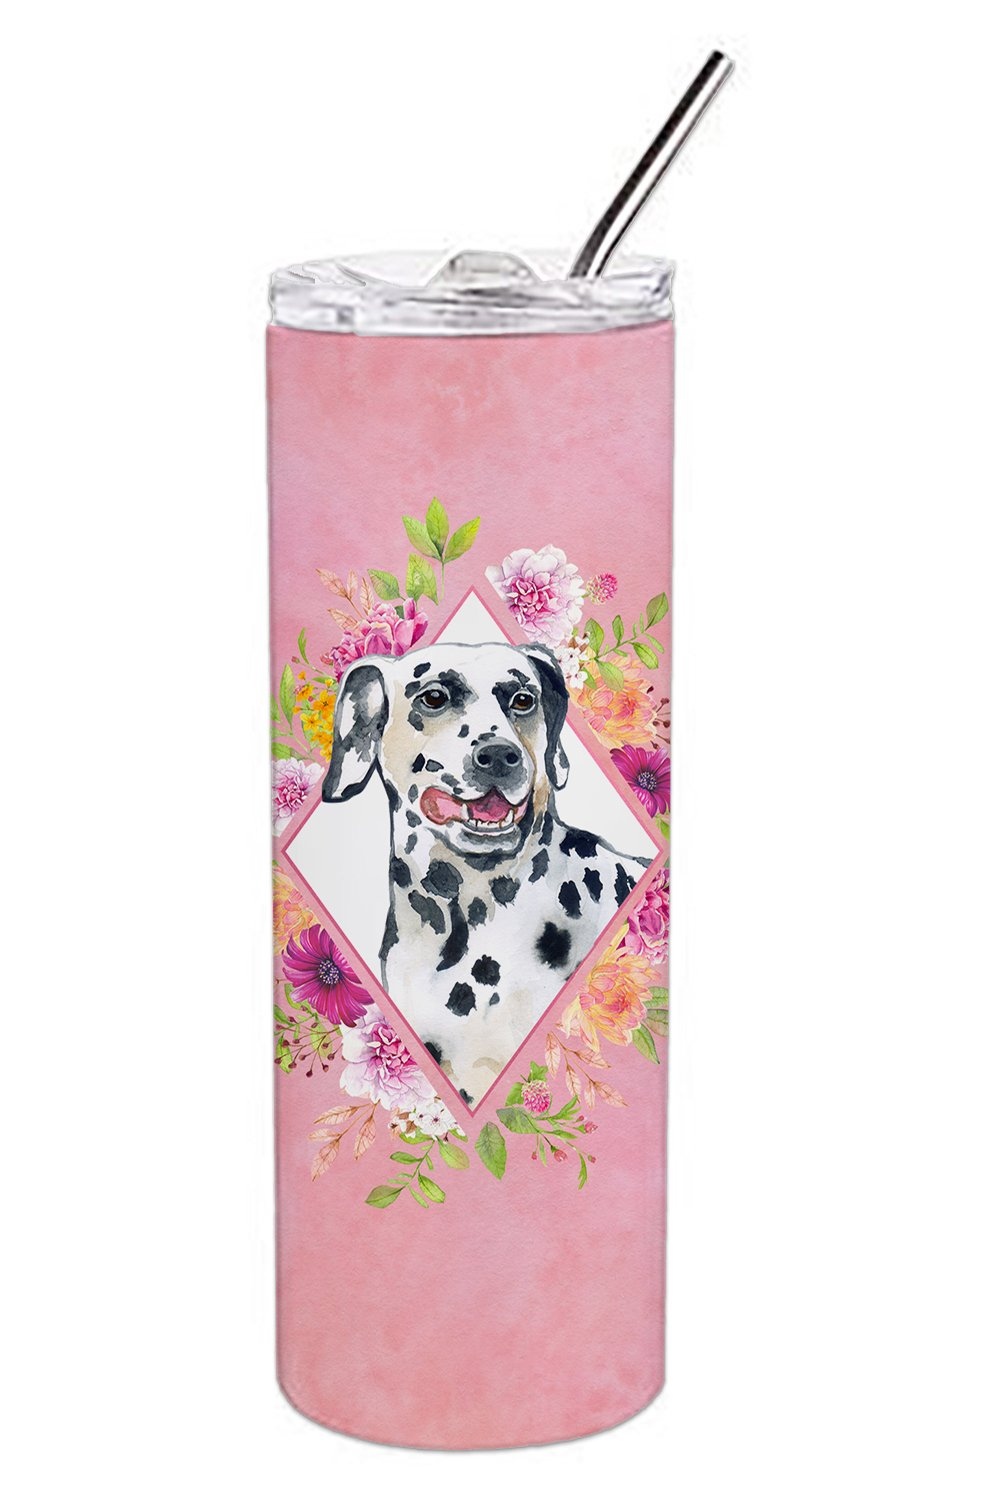 Dalmatian Pink Flowers Double Walled Stainless Steel 20 oz Skinny Tumbler CK4137TBL20 by Caroline's Treasures